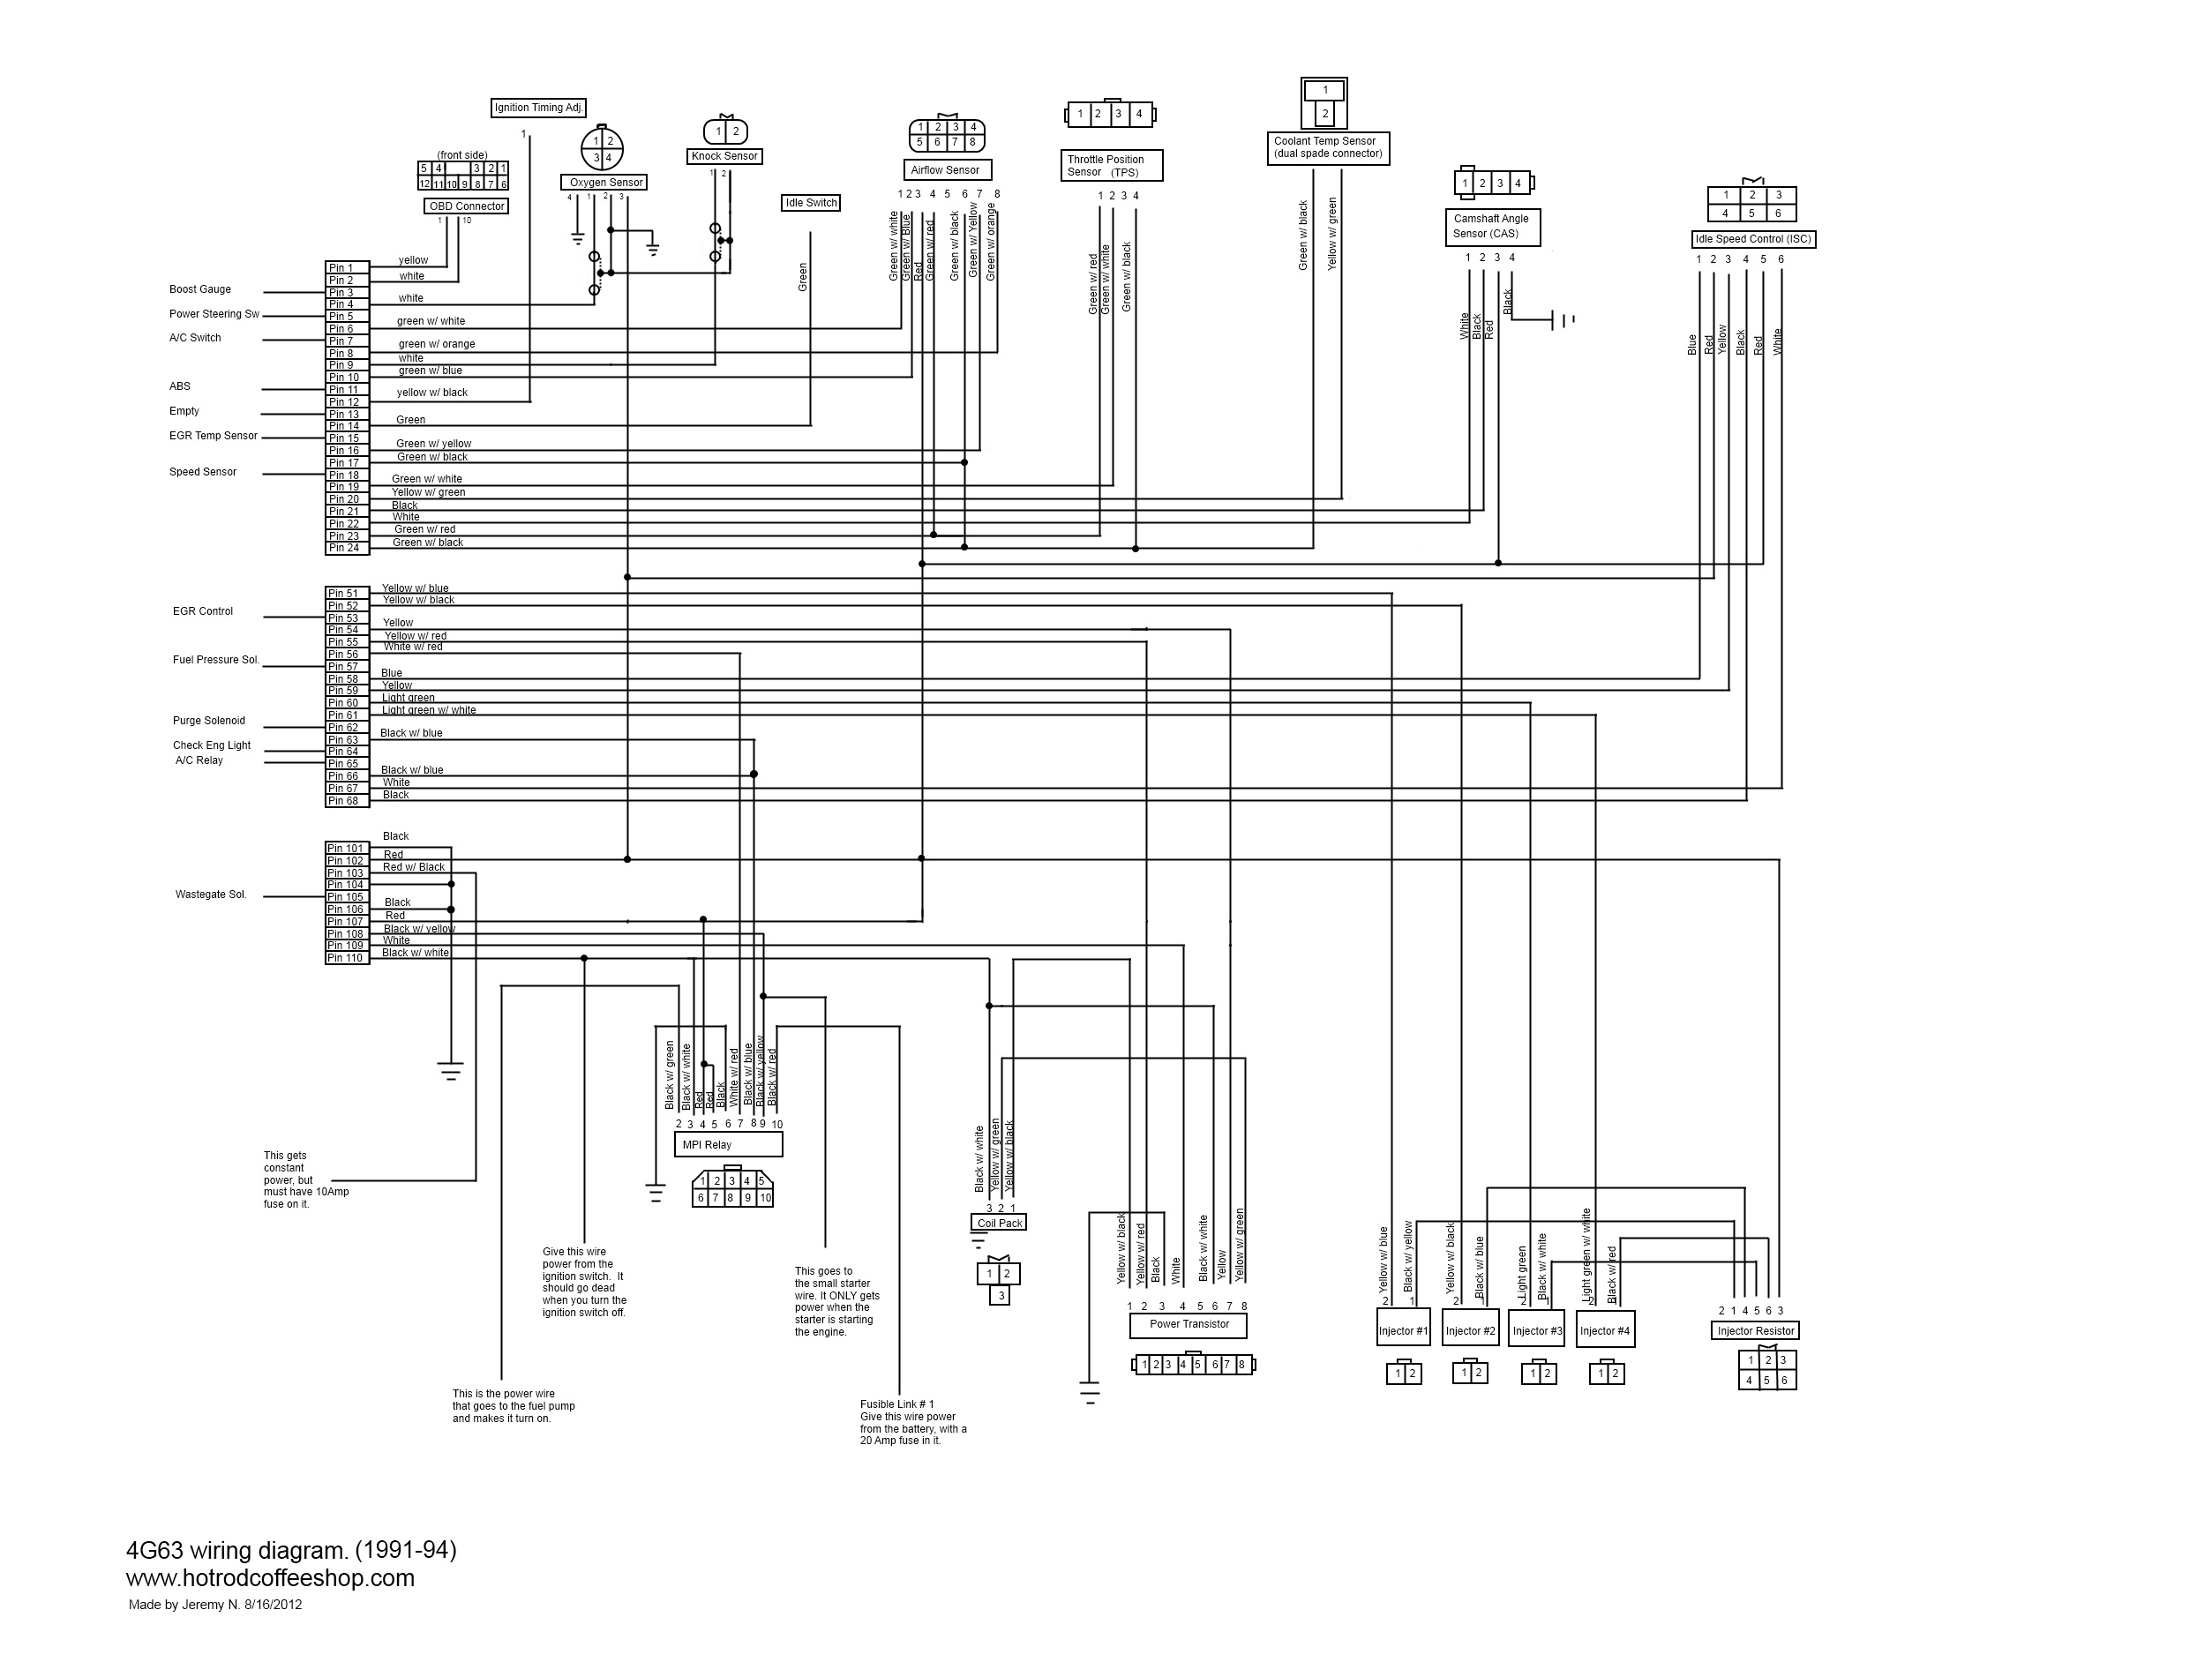 4g63ecudiagram_1 4g63 wiring diagrams schematics for engine swaps Electrical Socket at readyjetset.co